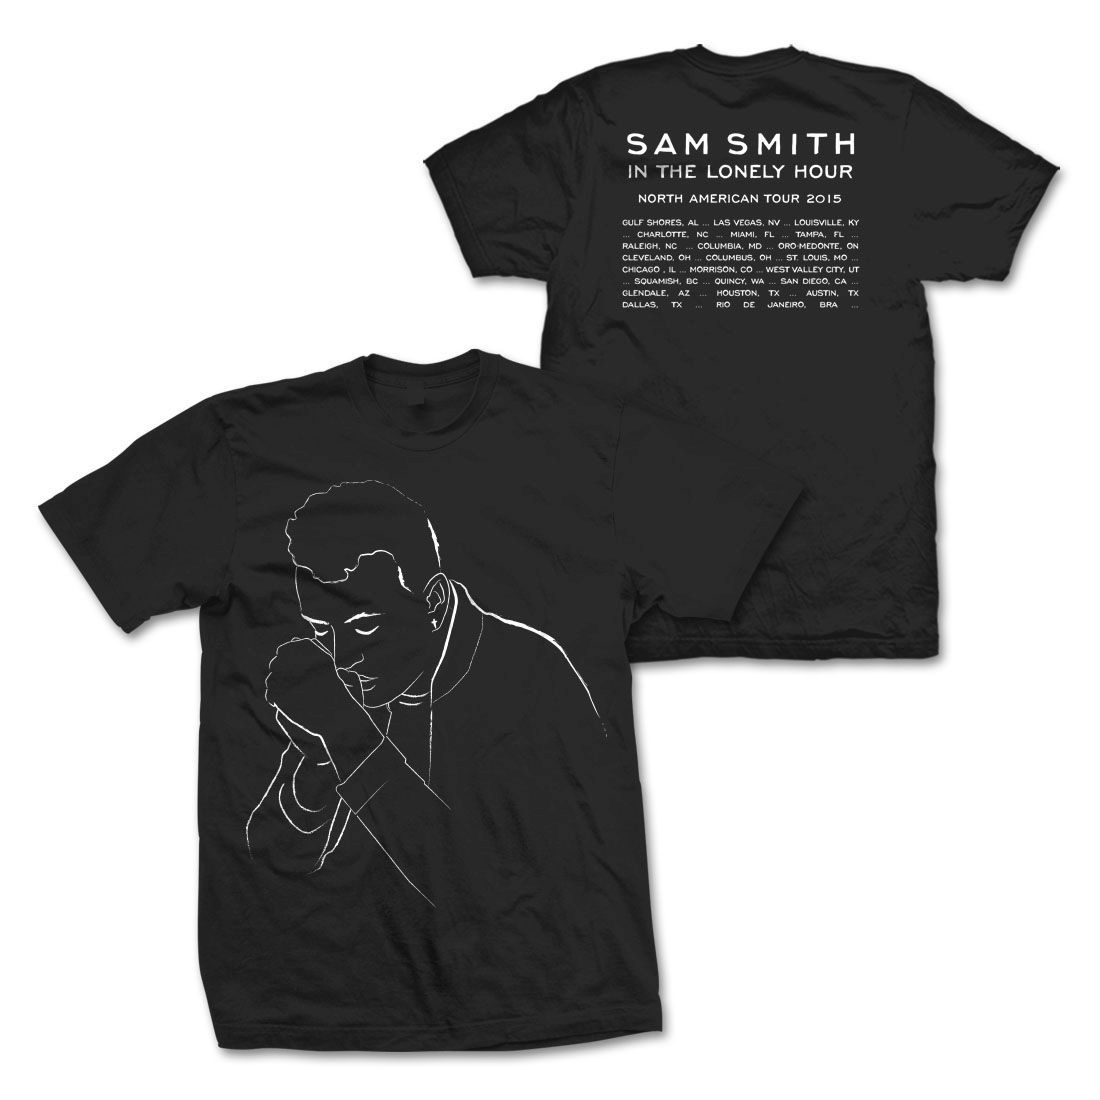 Sam Smith Illustration Tour T-Shirt